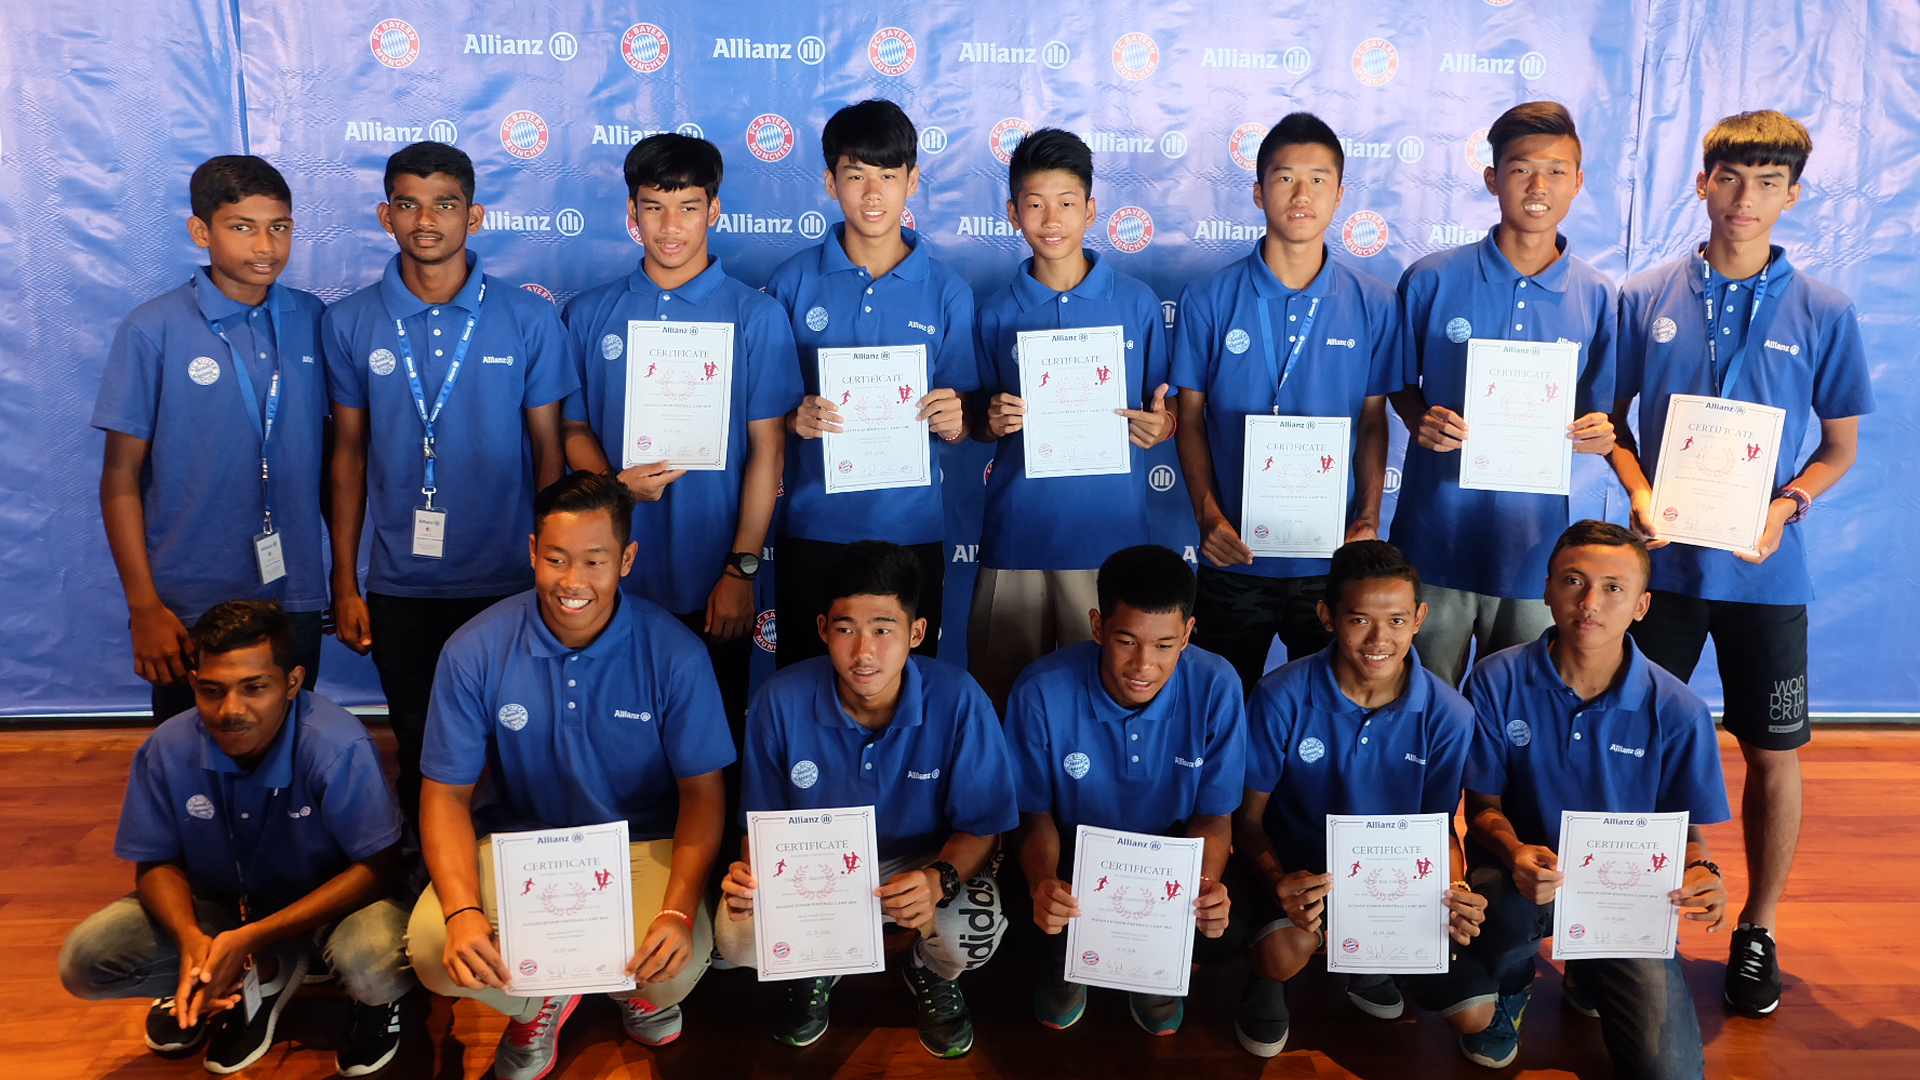 peserta-allianz-junior-football-camp-2016